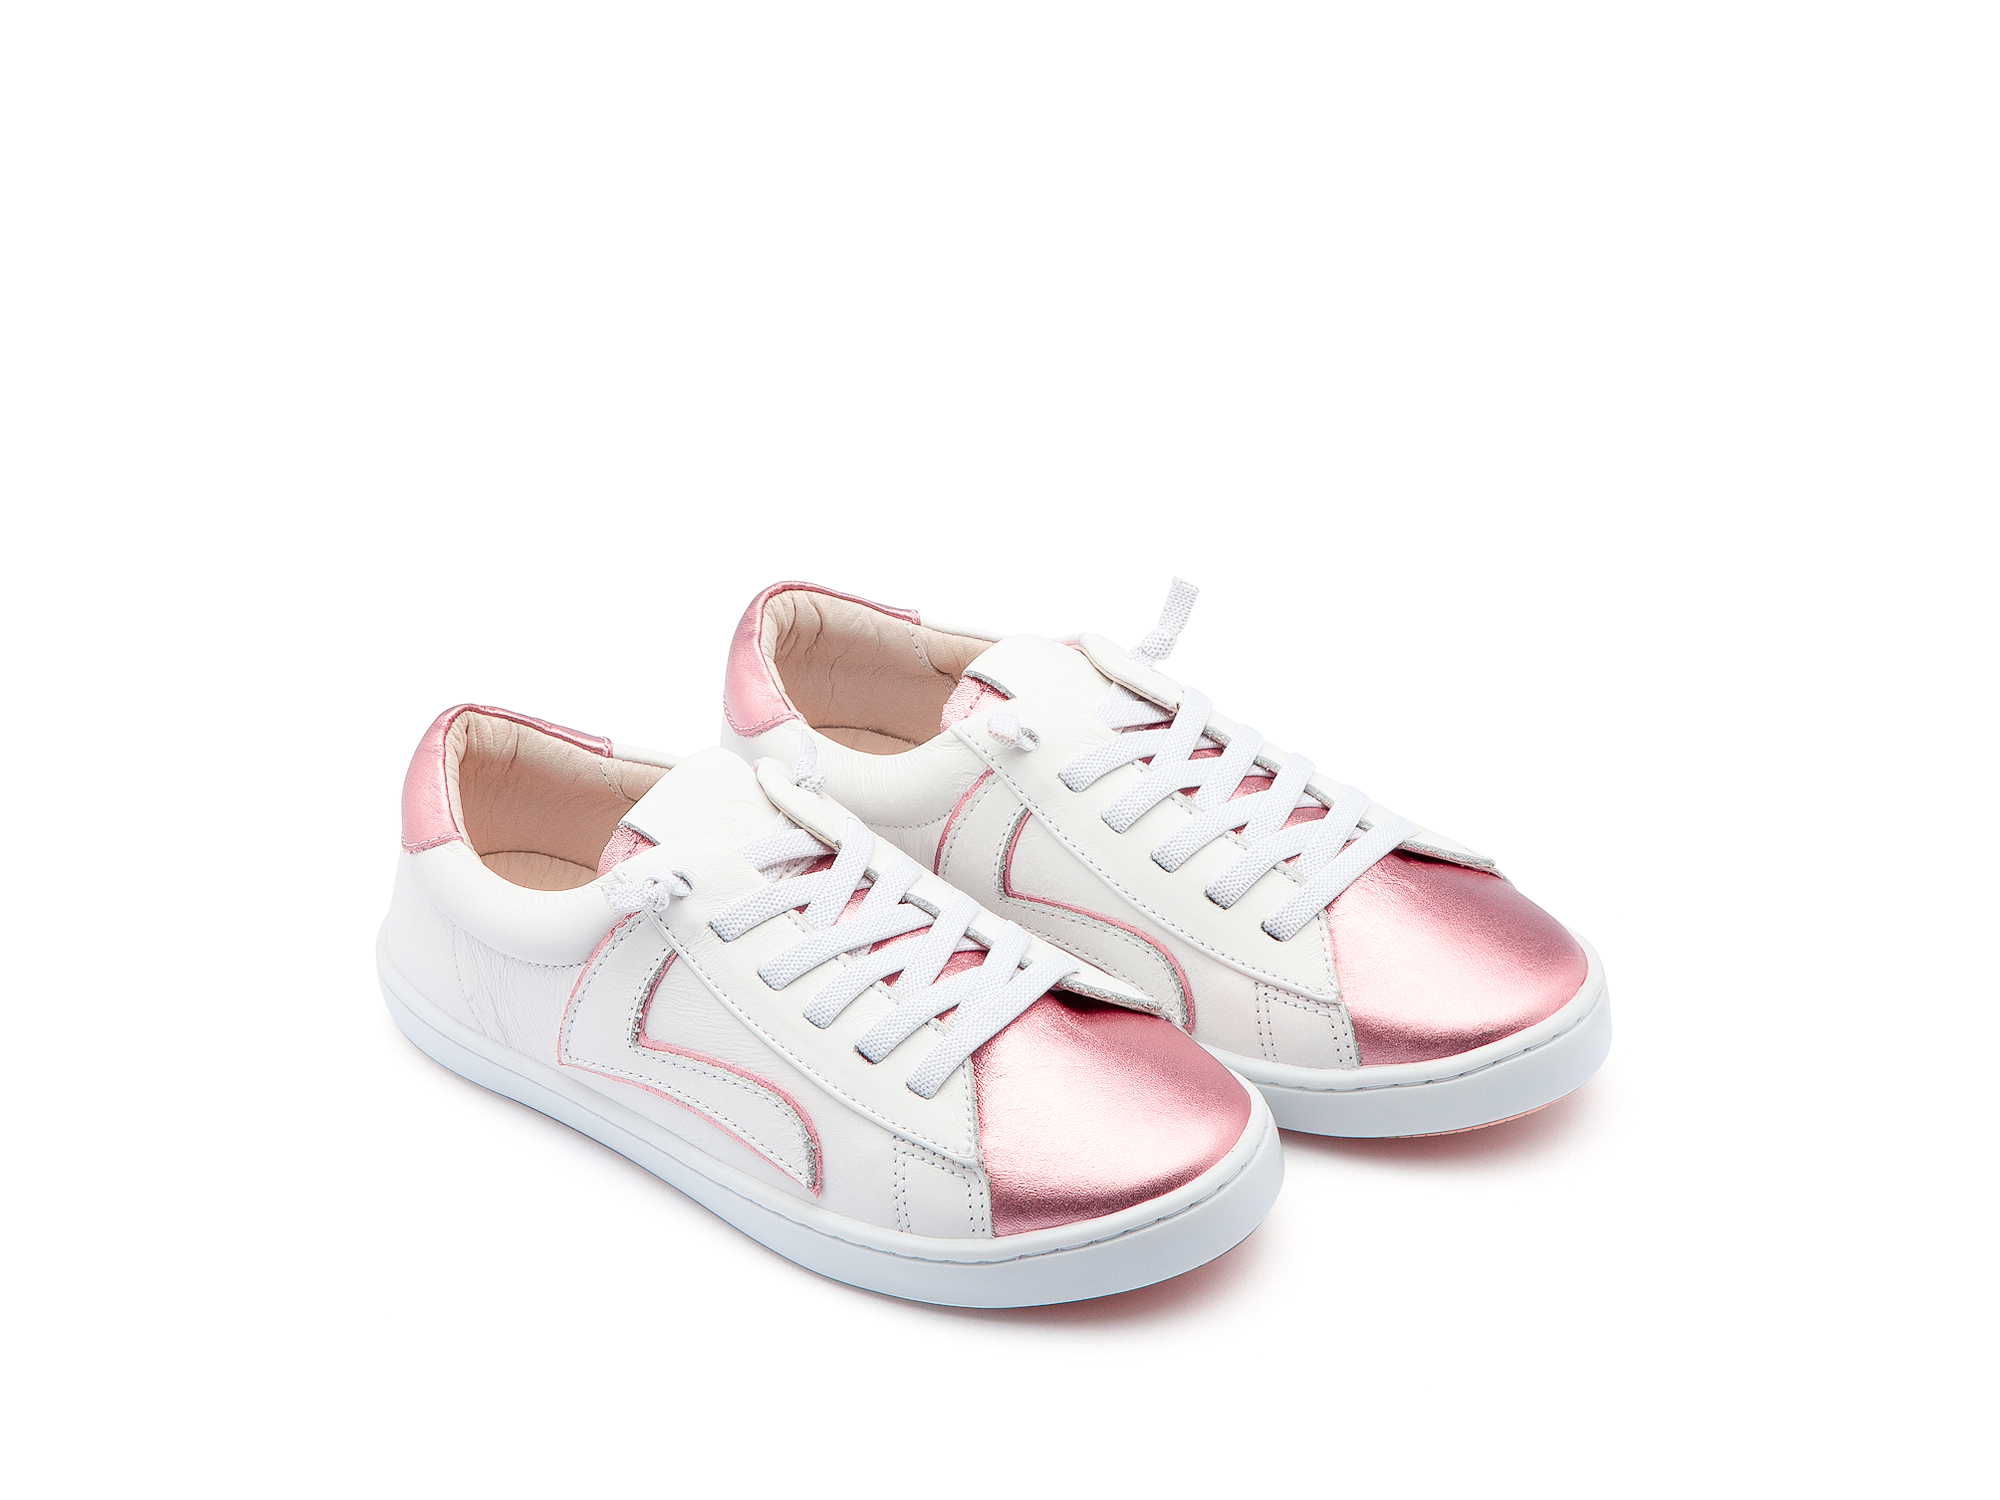 Tênis Skid White/ Rose Gold Junior 4 à 8 anos - 0